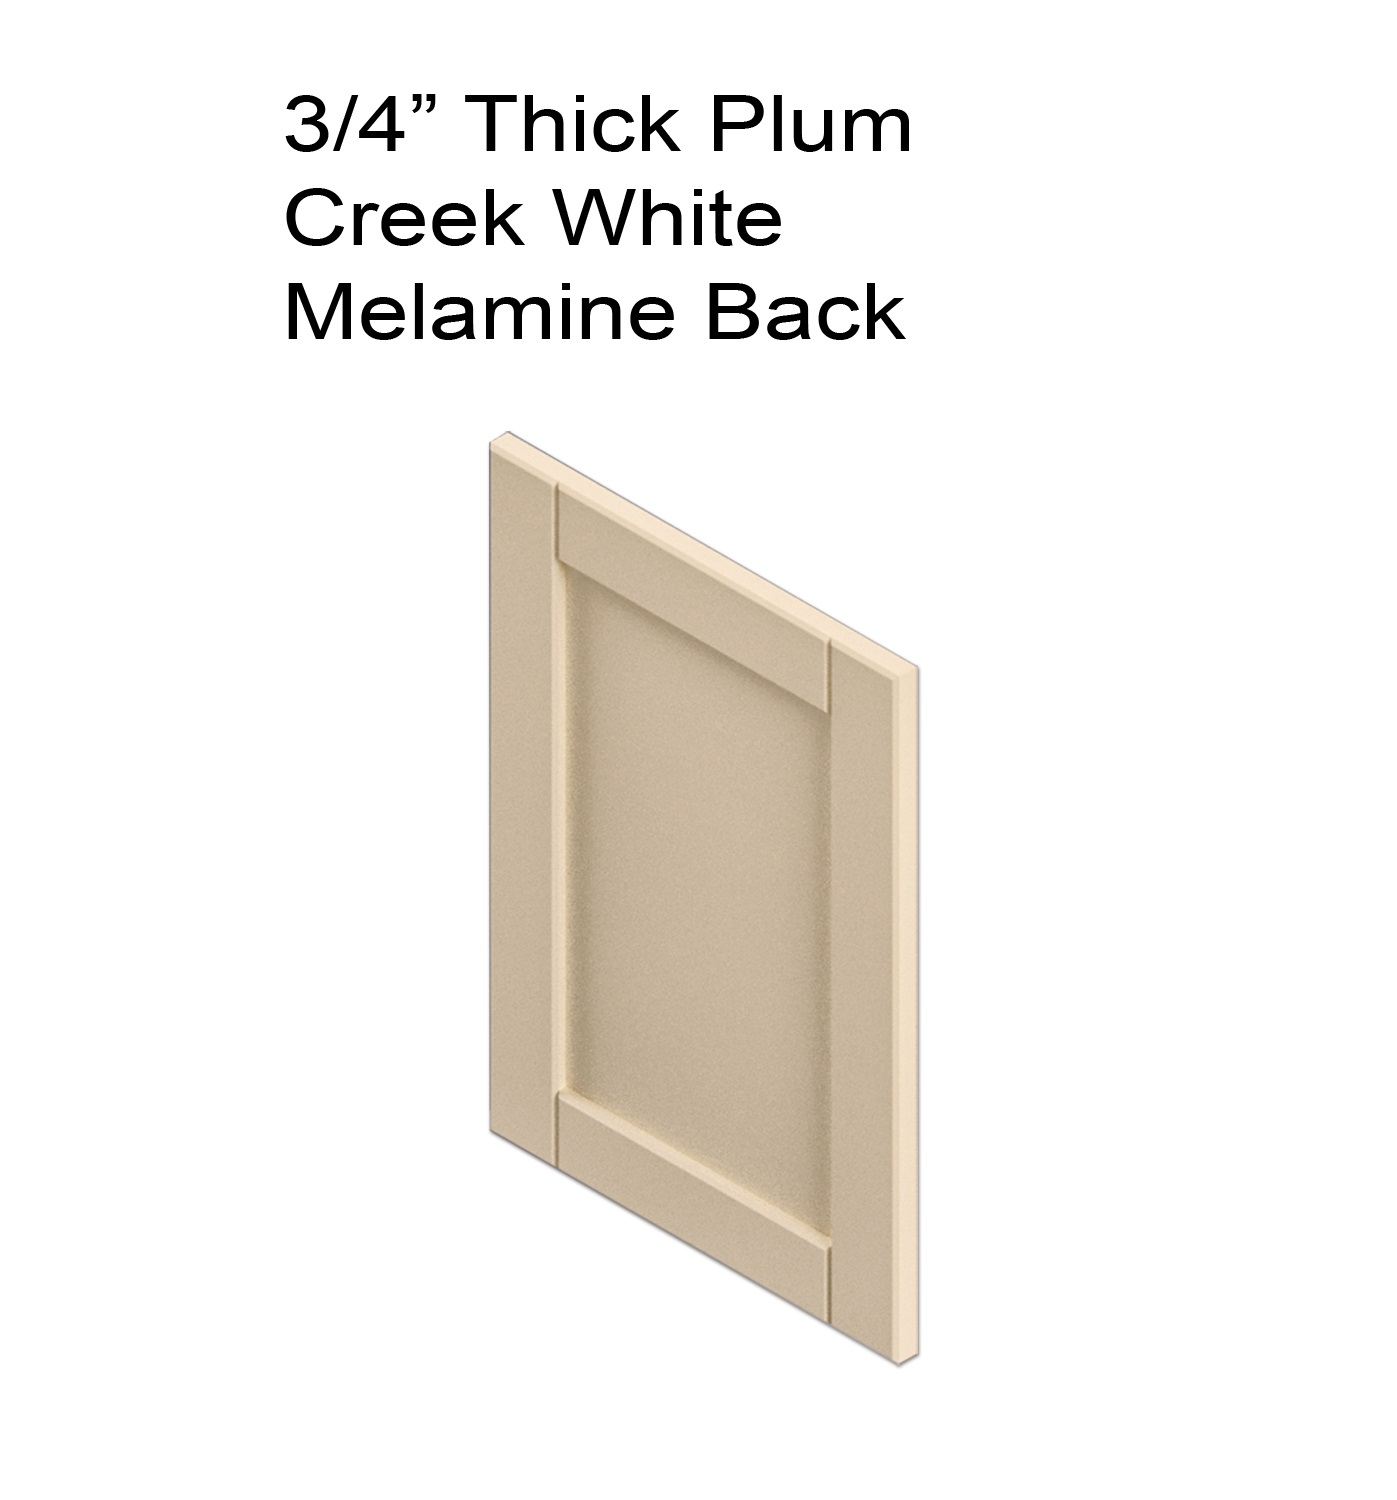 Thick Plum Creek White Melamine Back